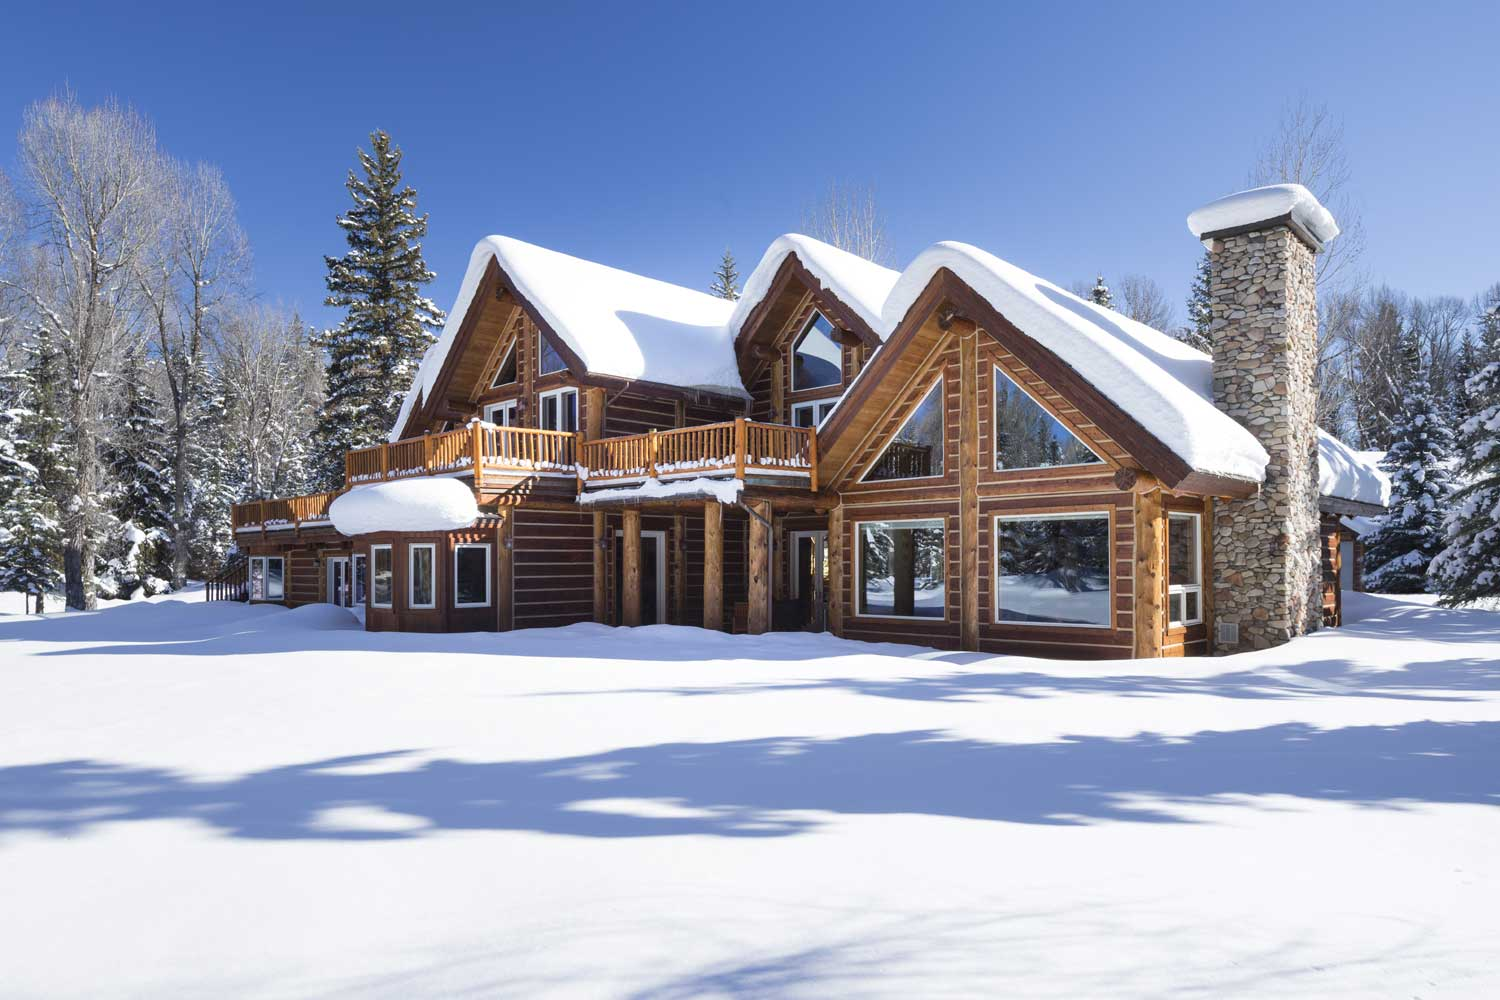 <b>Jackson, Wyoming</b><br/><i>4 Bedrooms, 5,535 sq. ft.</i><br/>Owl Creek mountain estate with mountain views